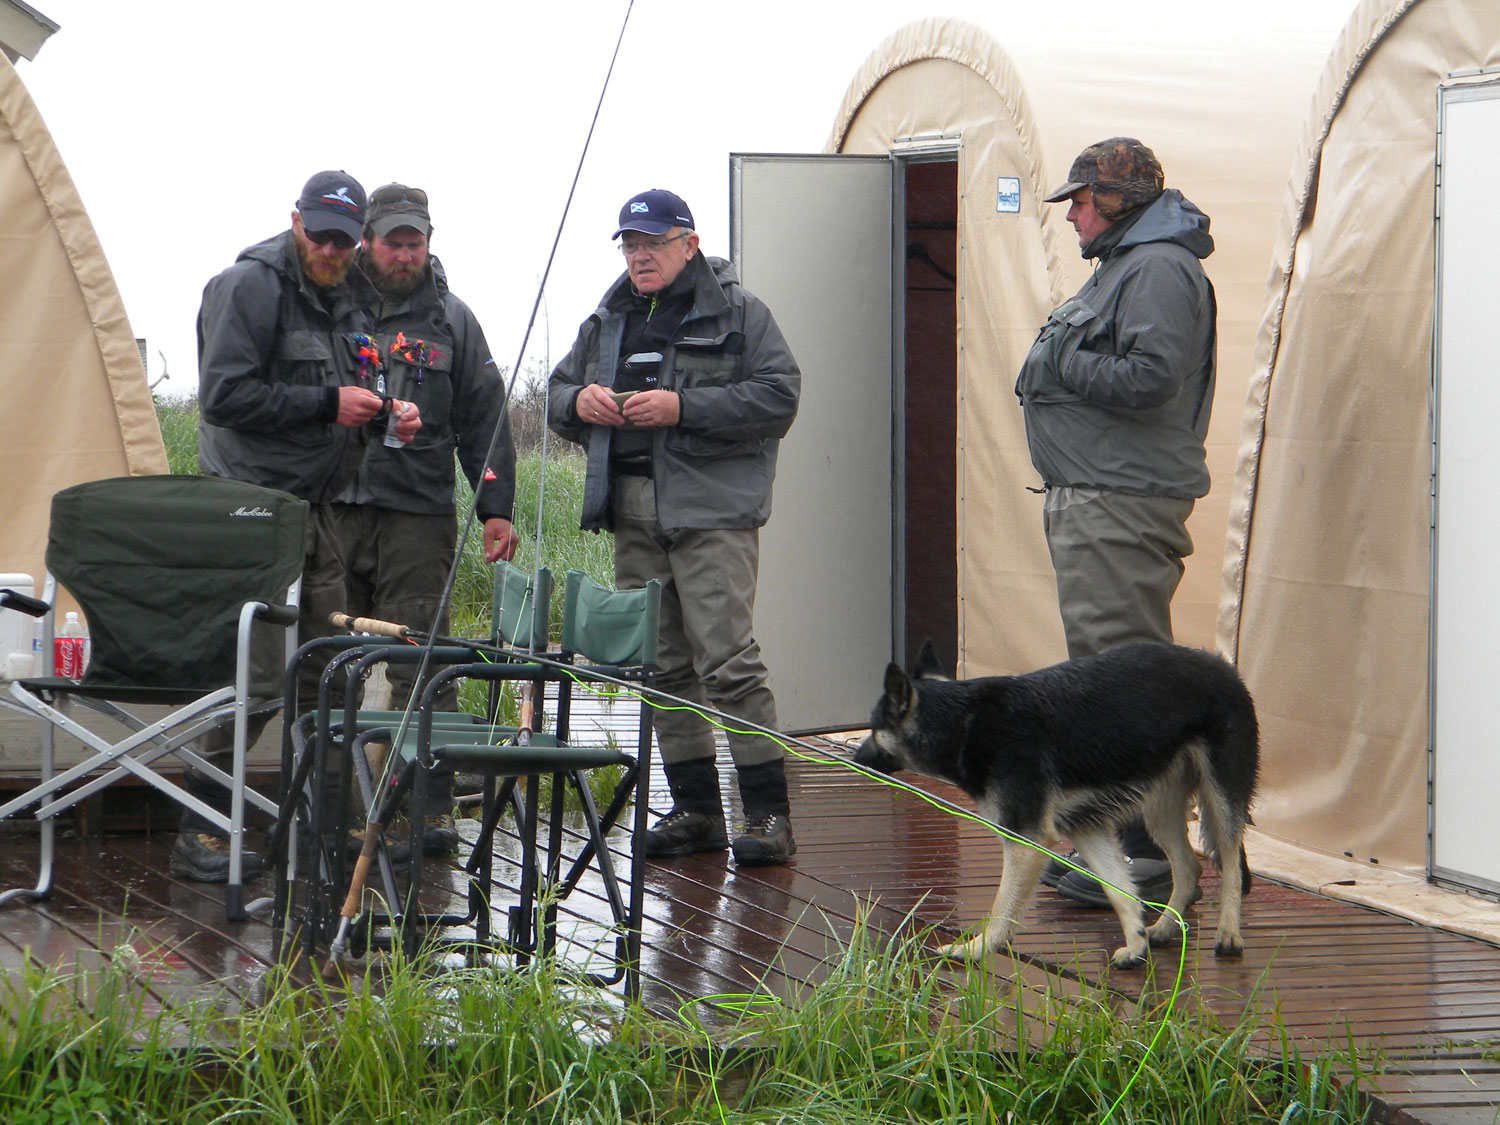 Customers dressed in layered clothing, not everyone wearing Simms jackets, in our view the best wading jackets in the world